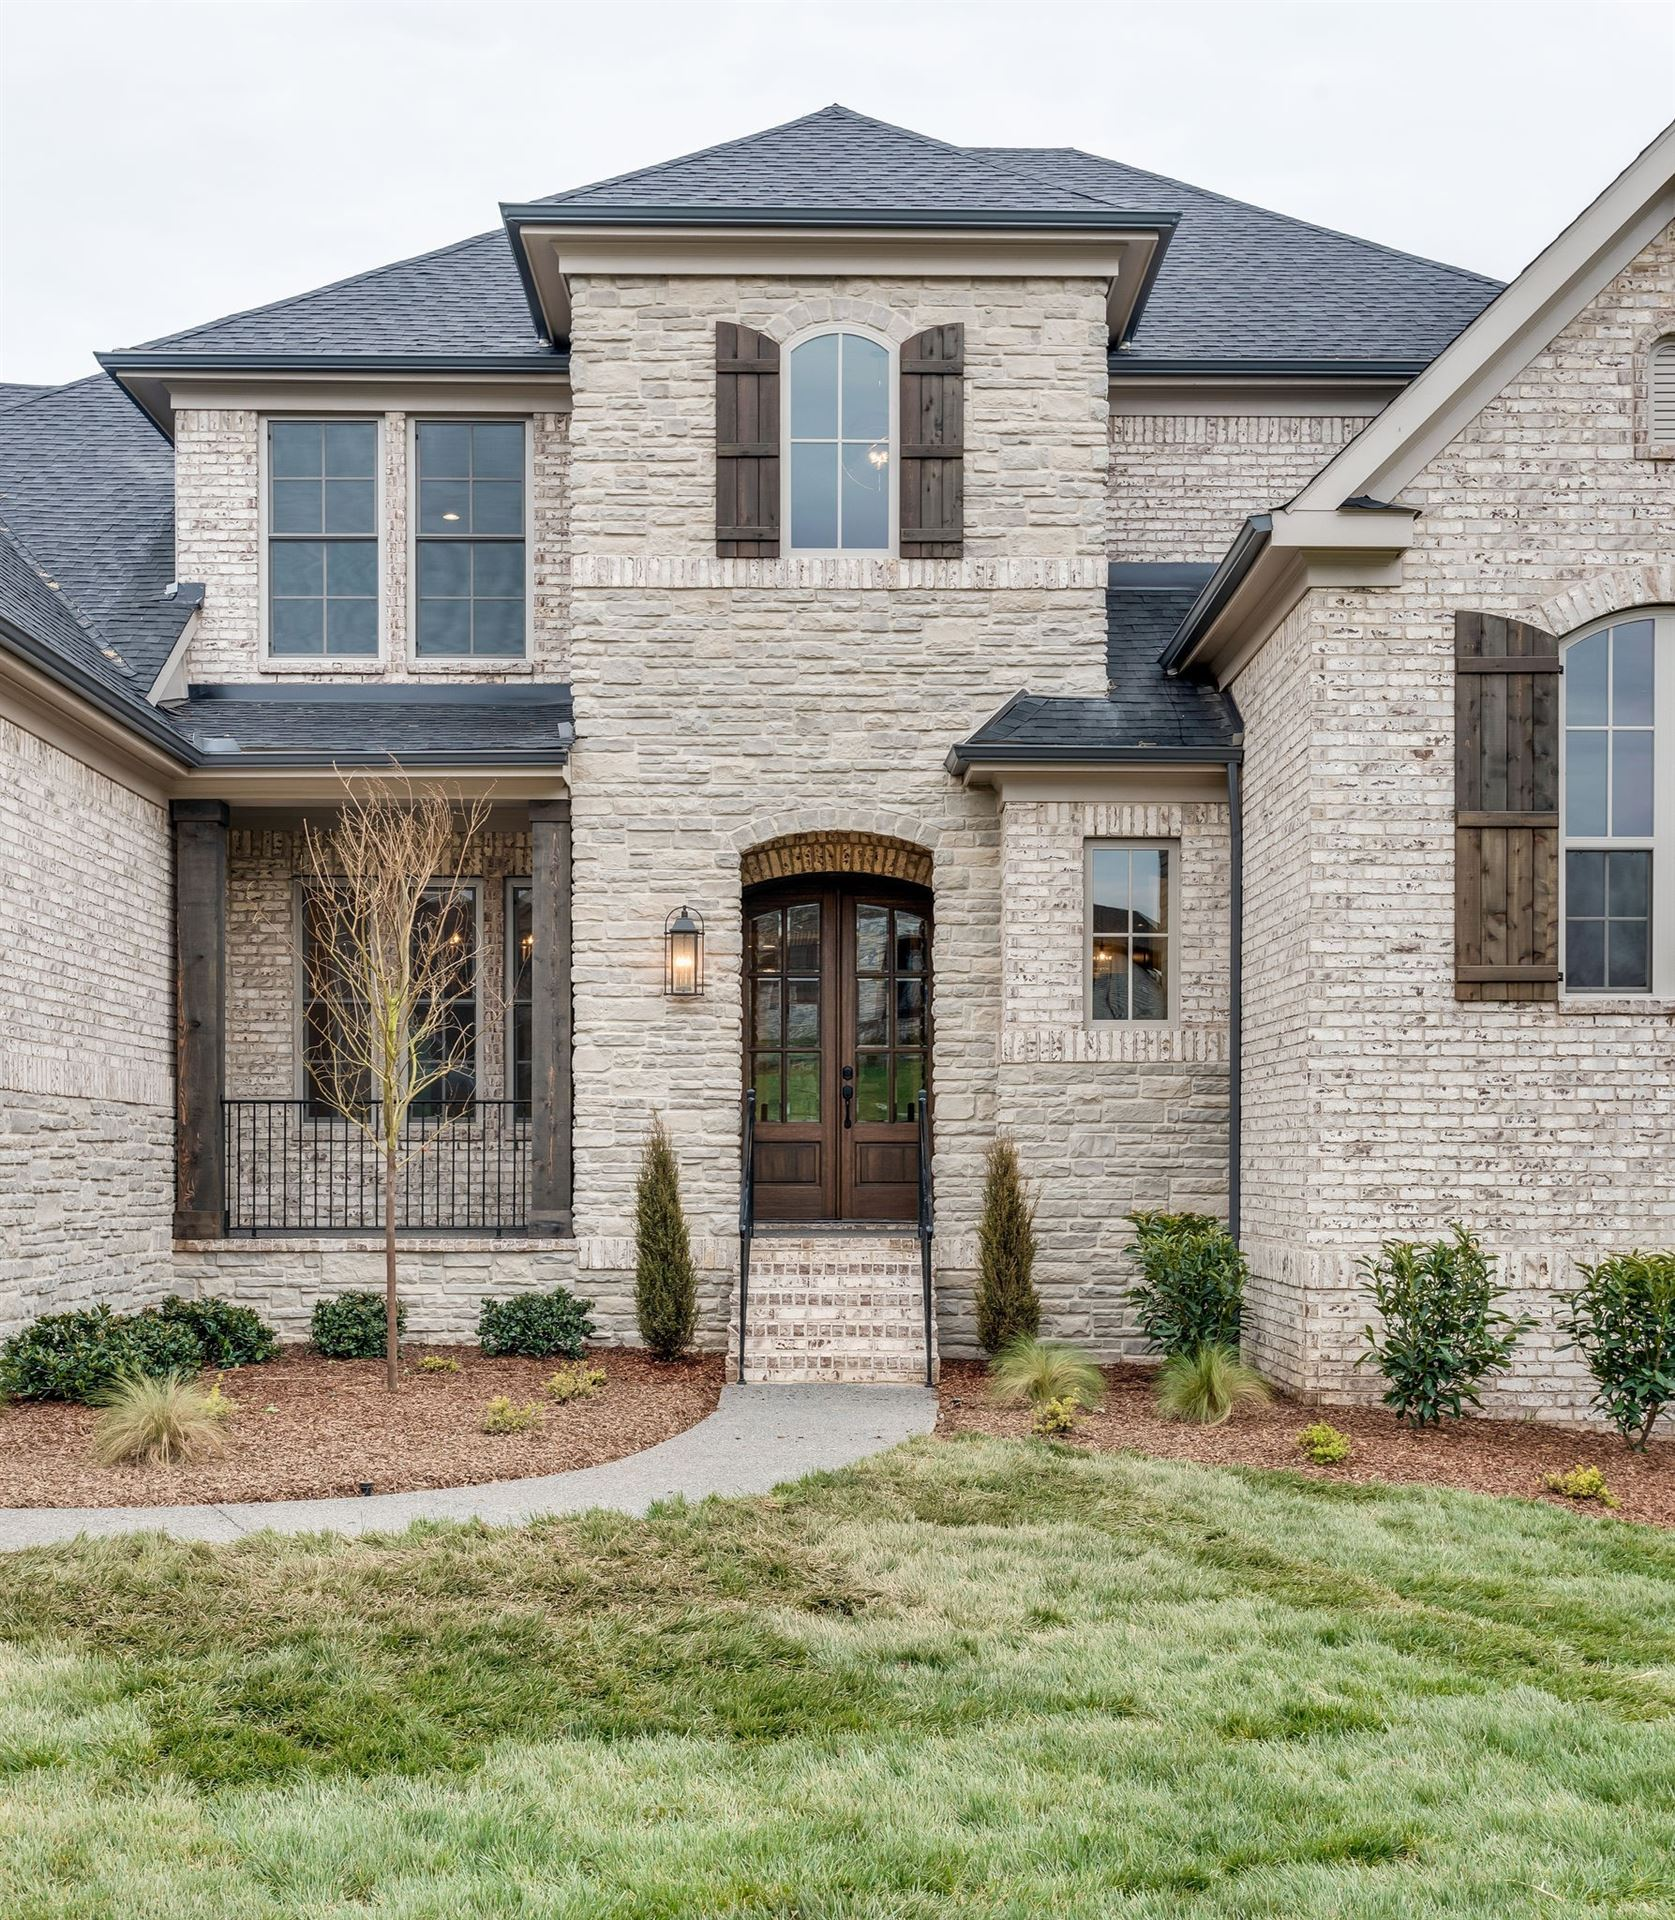 Photo of 1916 Parade Drive #24, Brentwood, TN 37027 (MLS # 2287216)